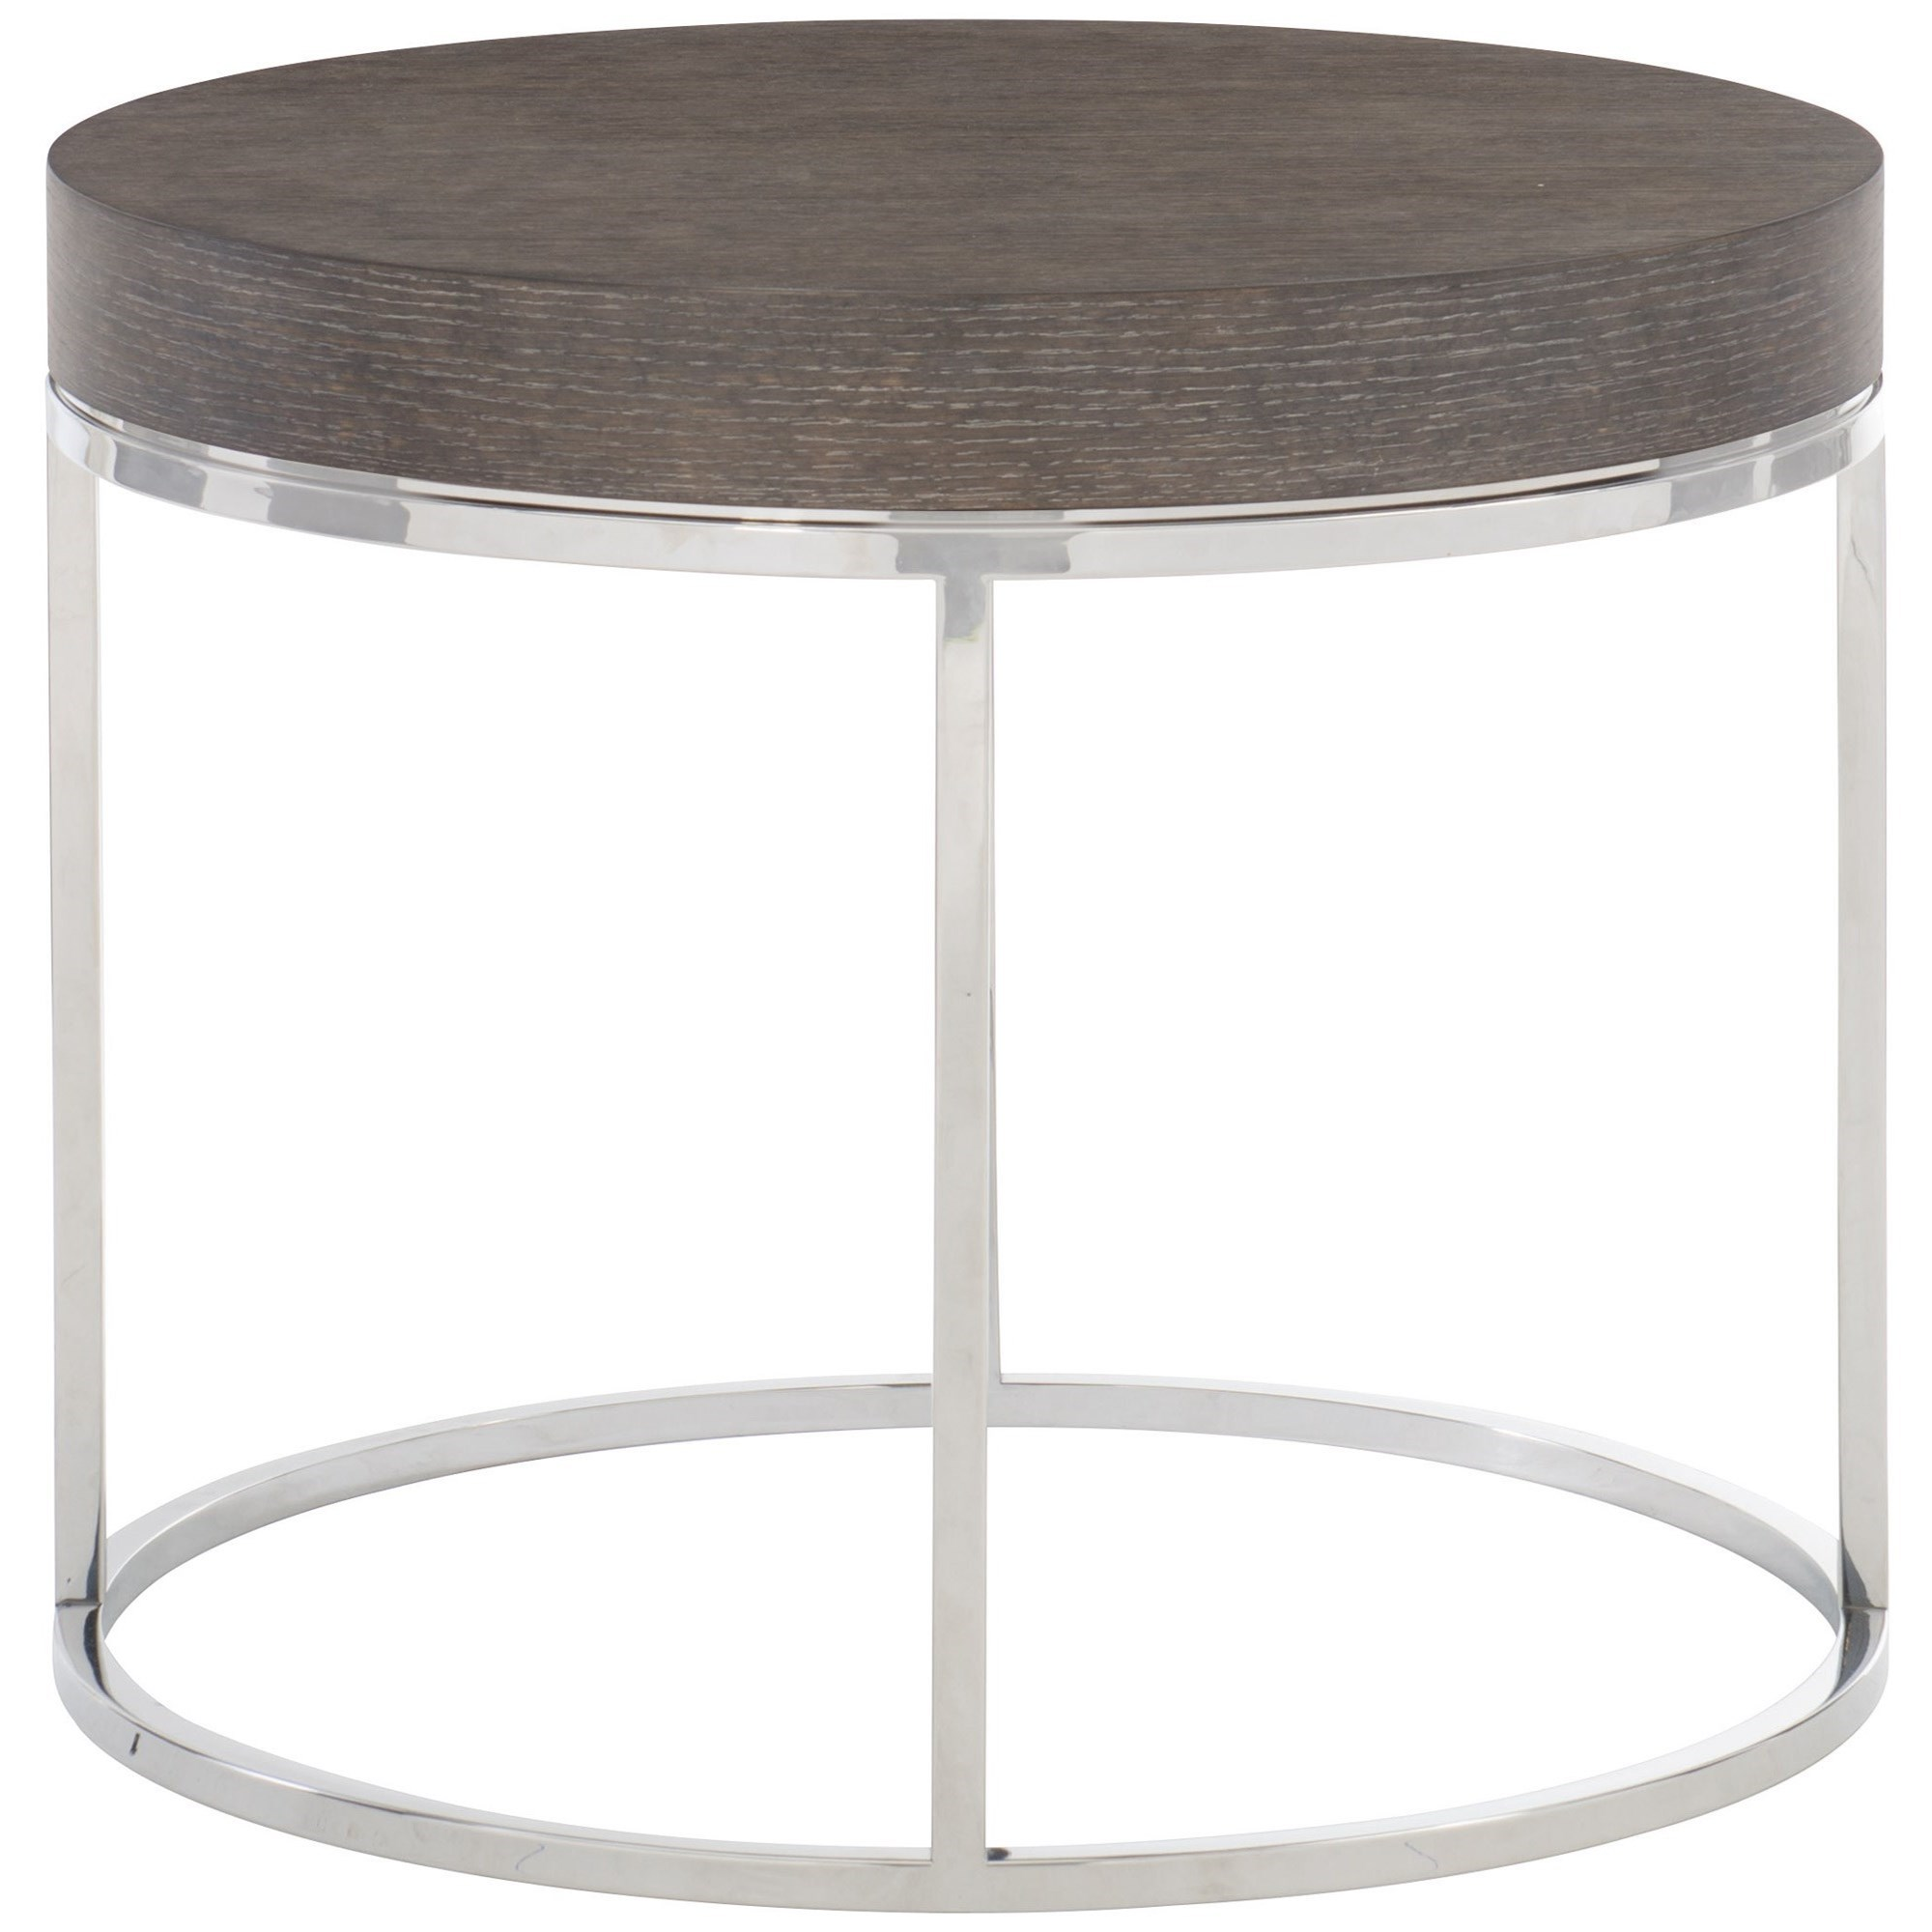 Riverside Round End Table by Bernhardt at Baer's Furniture